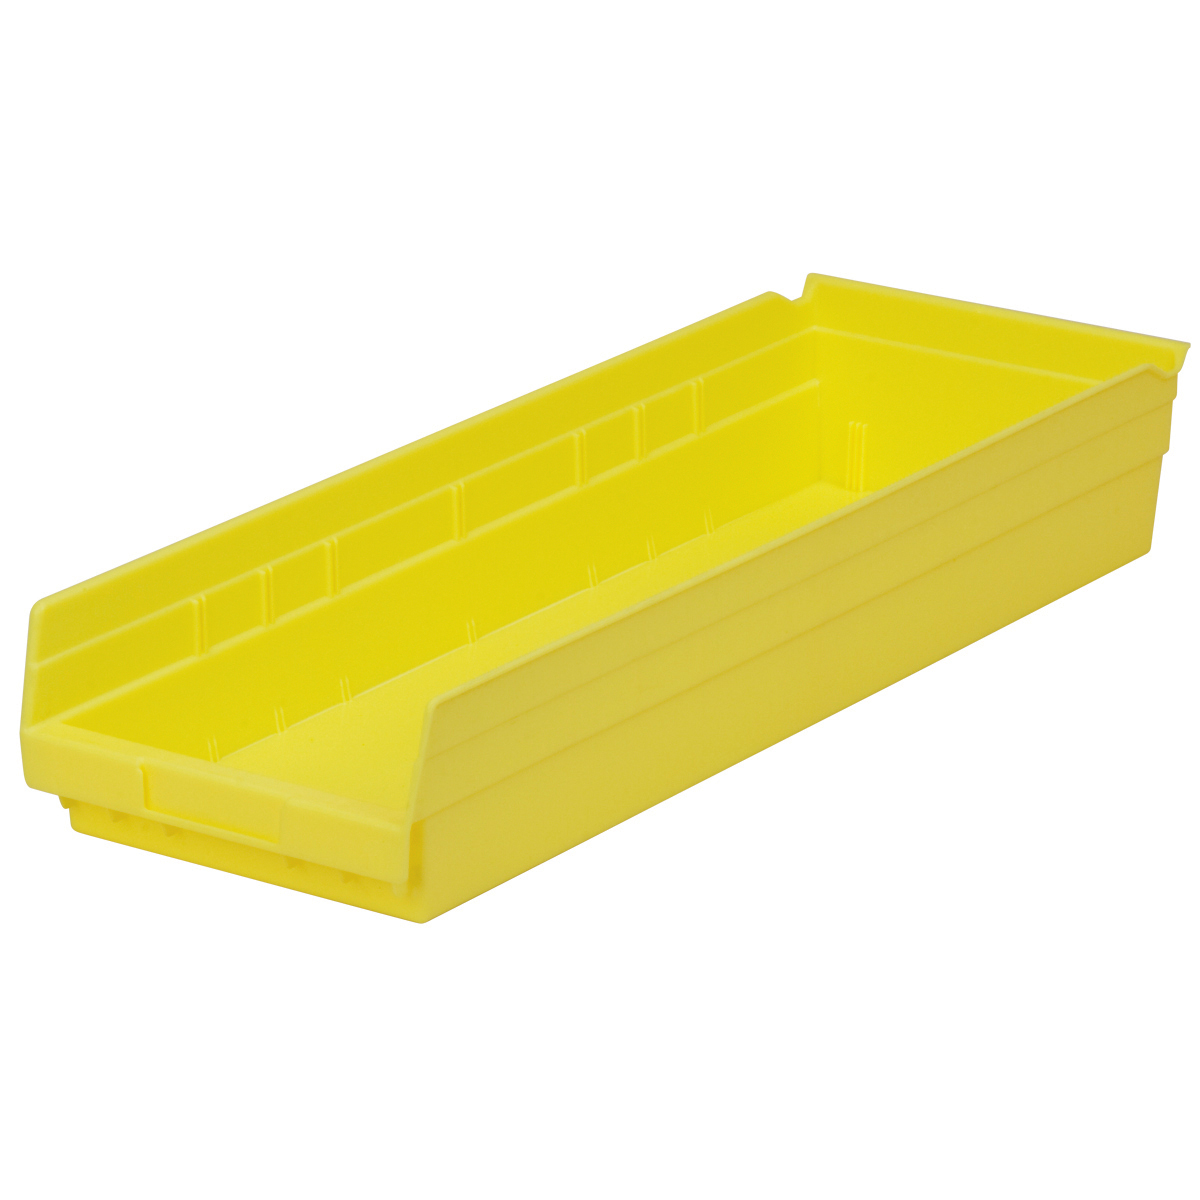 Shelf Bin 23-5/8 x 8-3/8 x 4, Yellow (30184YELLO).  This item sold in carton quantities of 6.